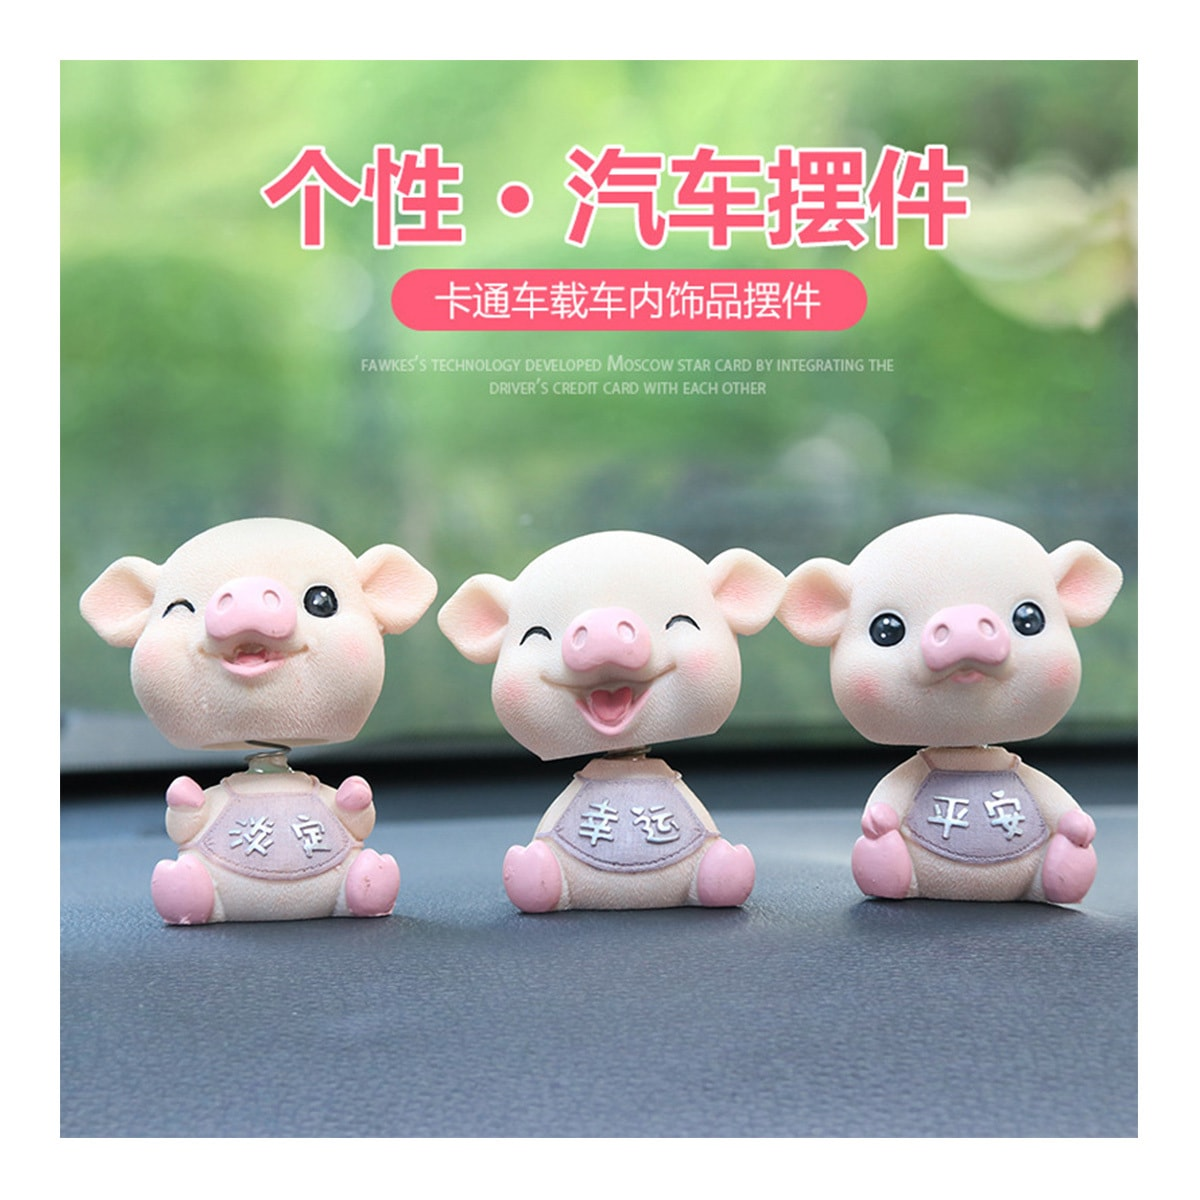 Yamibuy.com:Customer reviews:LORD UPHOLD Car Ornaments Cute Resin Shake Head Pig Doll Lovely Auto Dashboard Toys Home Decoration Purple PingAn-1pc